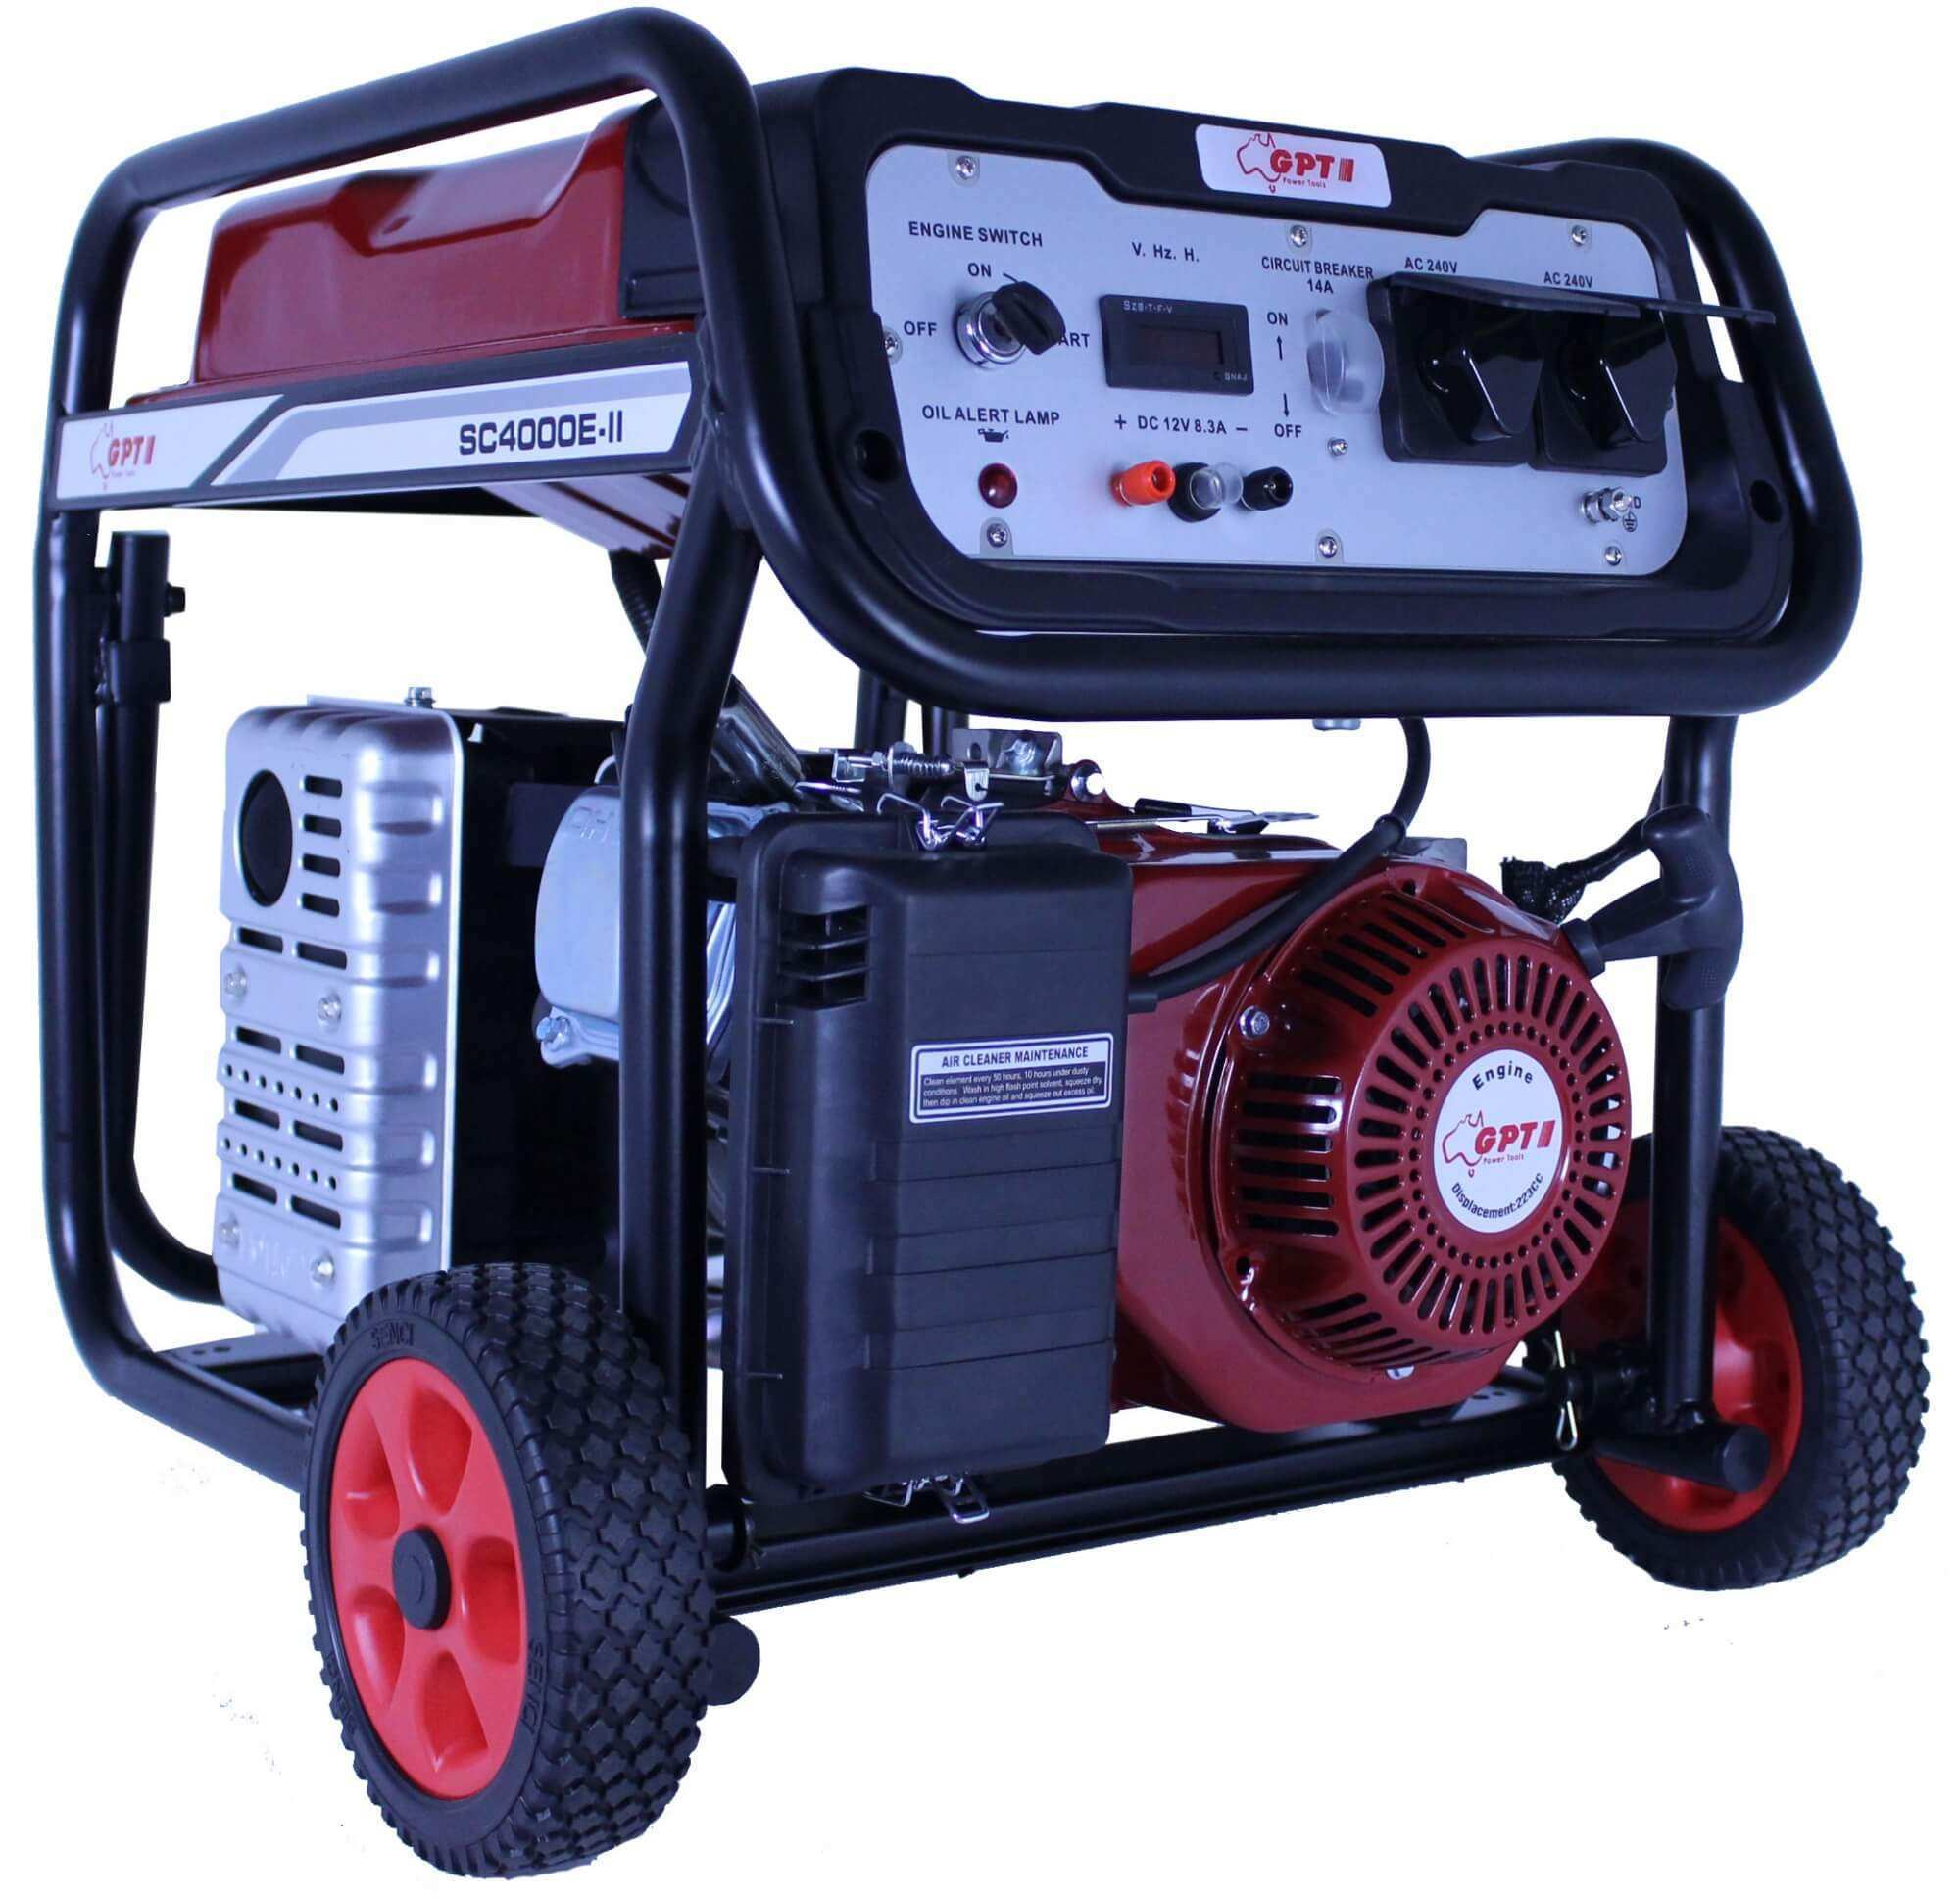 HIGH QUALITY GPT 4000 GENERATOR 7.5HP 3.5KVA KEY START & REMOTE CONTROL